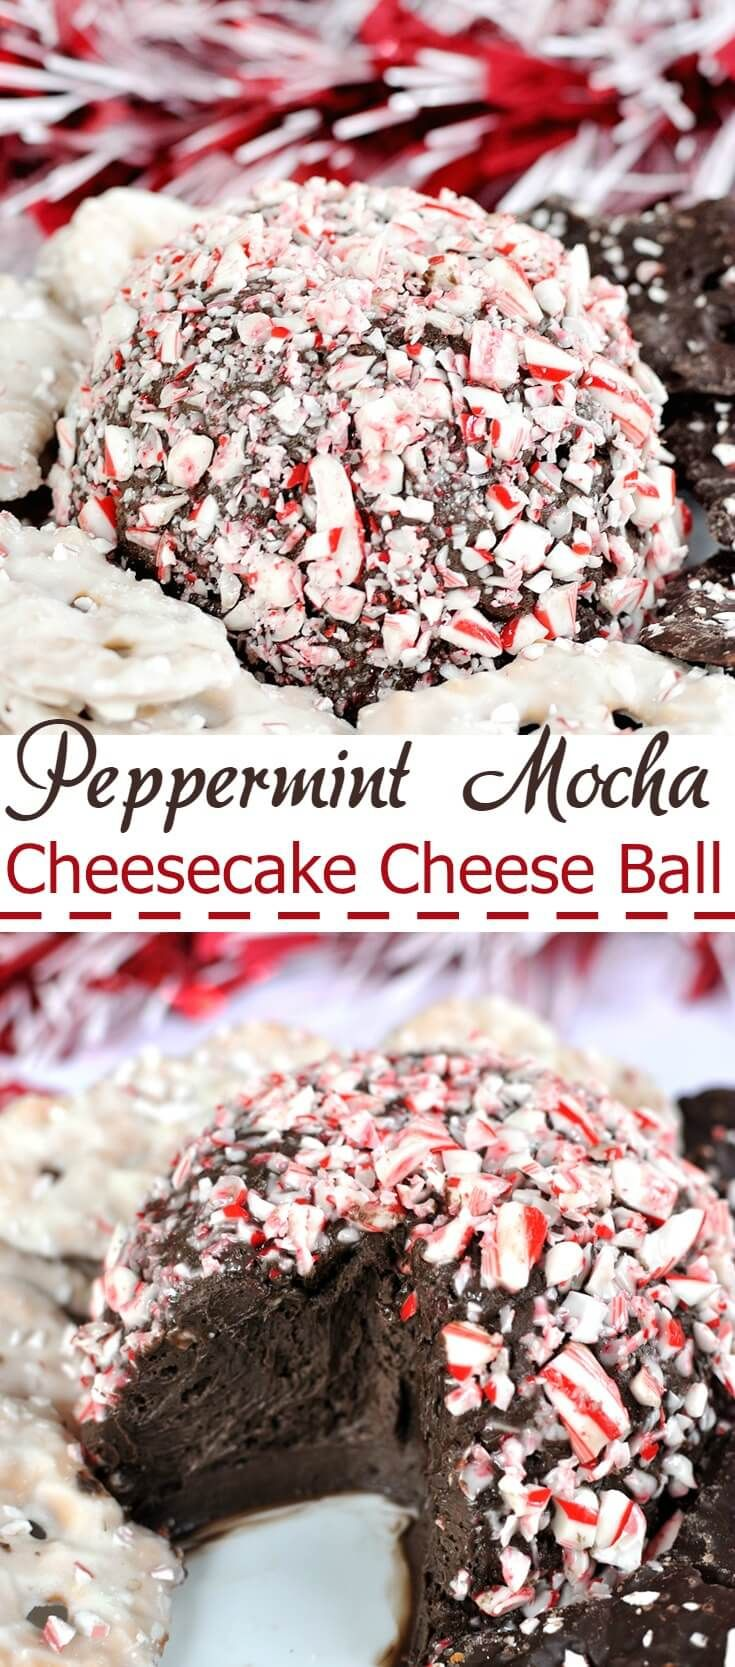 An easy holiday dessert all wrapped up in a cute little ball of sweet, minty goodness! Your guests will LOVE this Peppermint Mocha Cheesecake Cheese Ball.